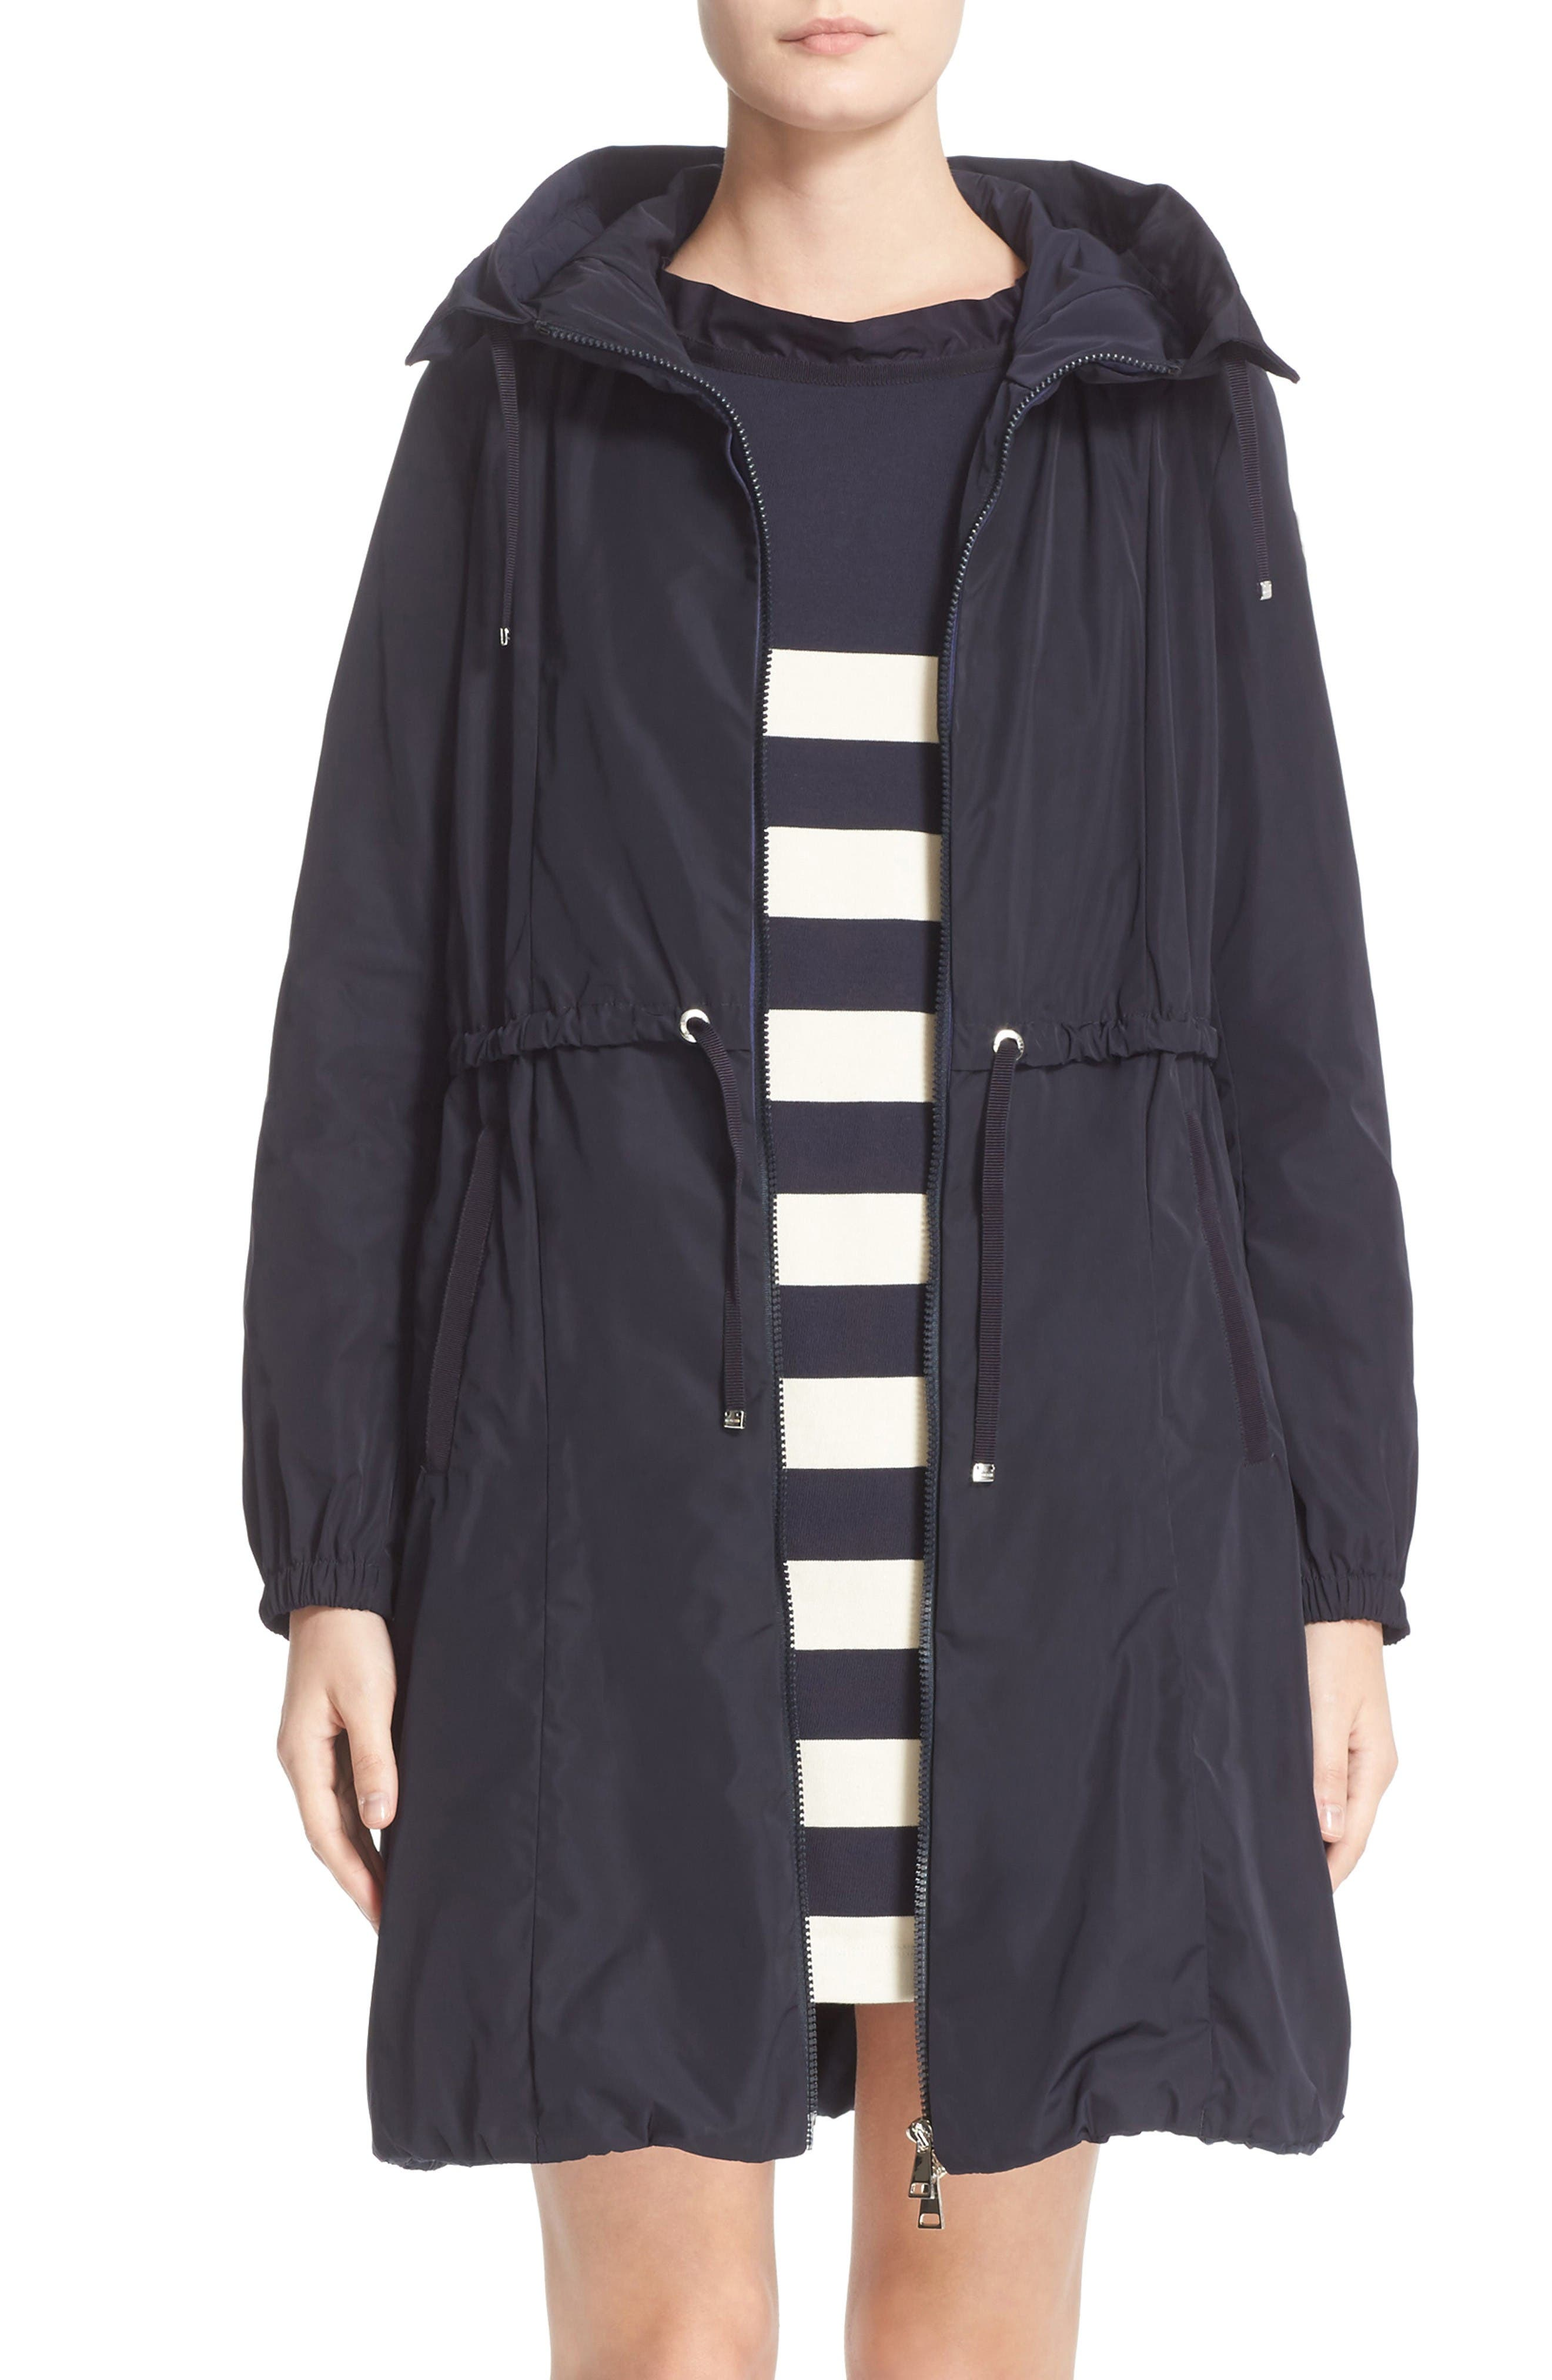 MONCLER Tuile Water Resistant Long Raincoat